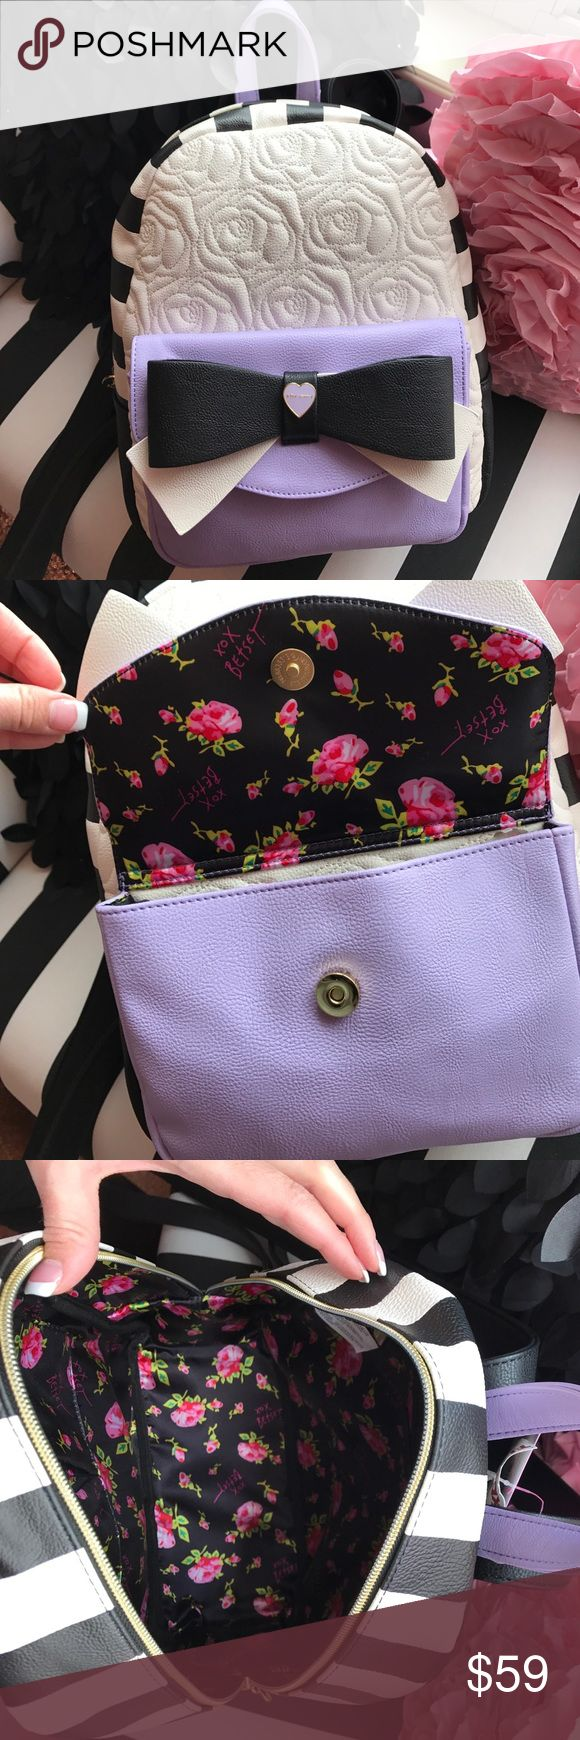 Betsy Johnson backpack Purple, black and off white backpack. Backpack measures 12 1/2 inches high , 10 inches wide. Adjustable straps on back. Floral lining. Betsey Johnson Bags Backpacks